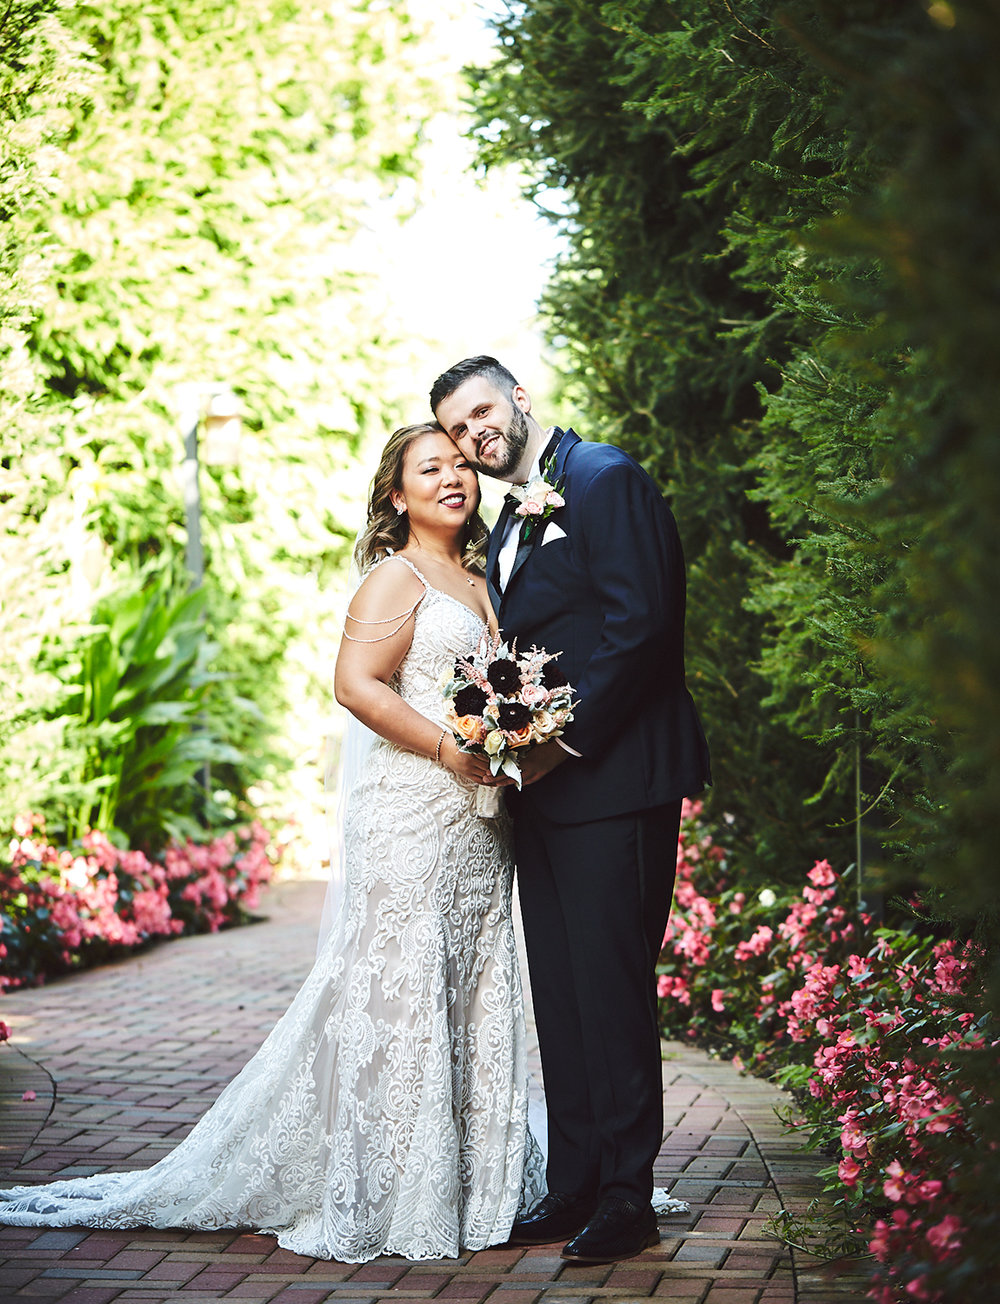 180922_CrestHollowCountryClubWeddingPhotography_LongIslandWeddingPhotographer_By_BriJohnsonWeddings_0048.jpg